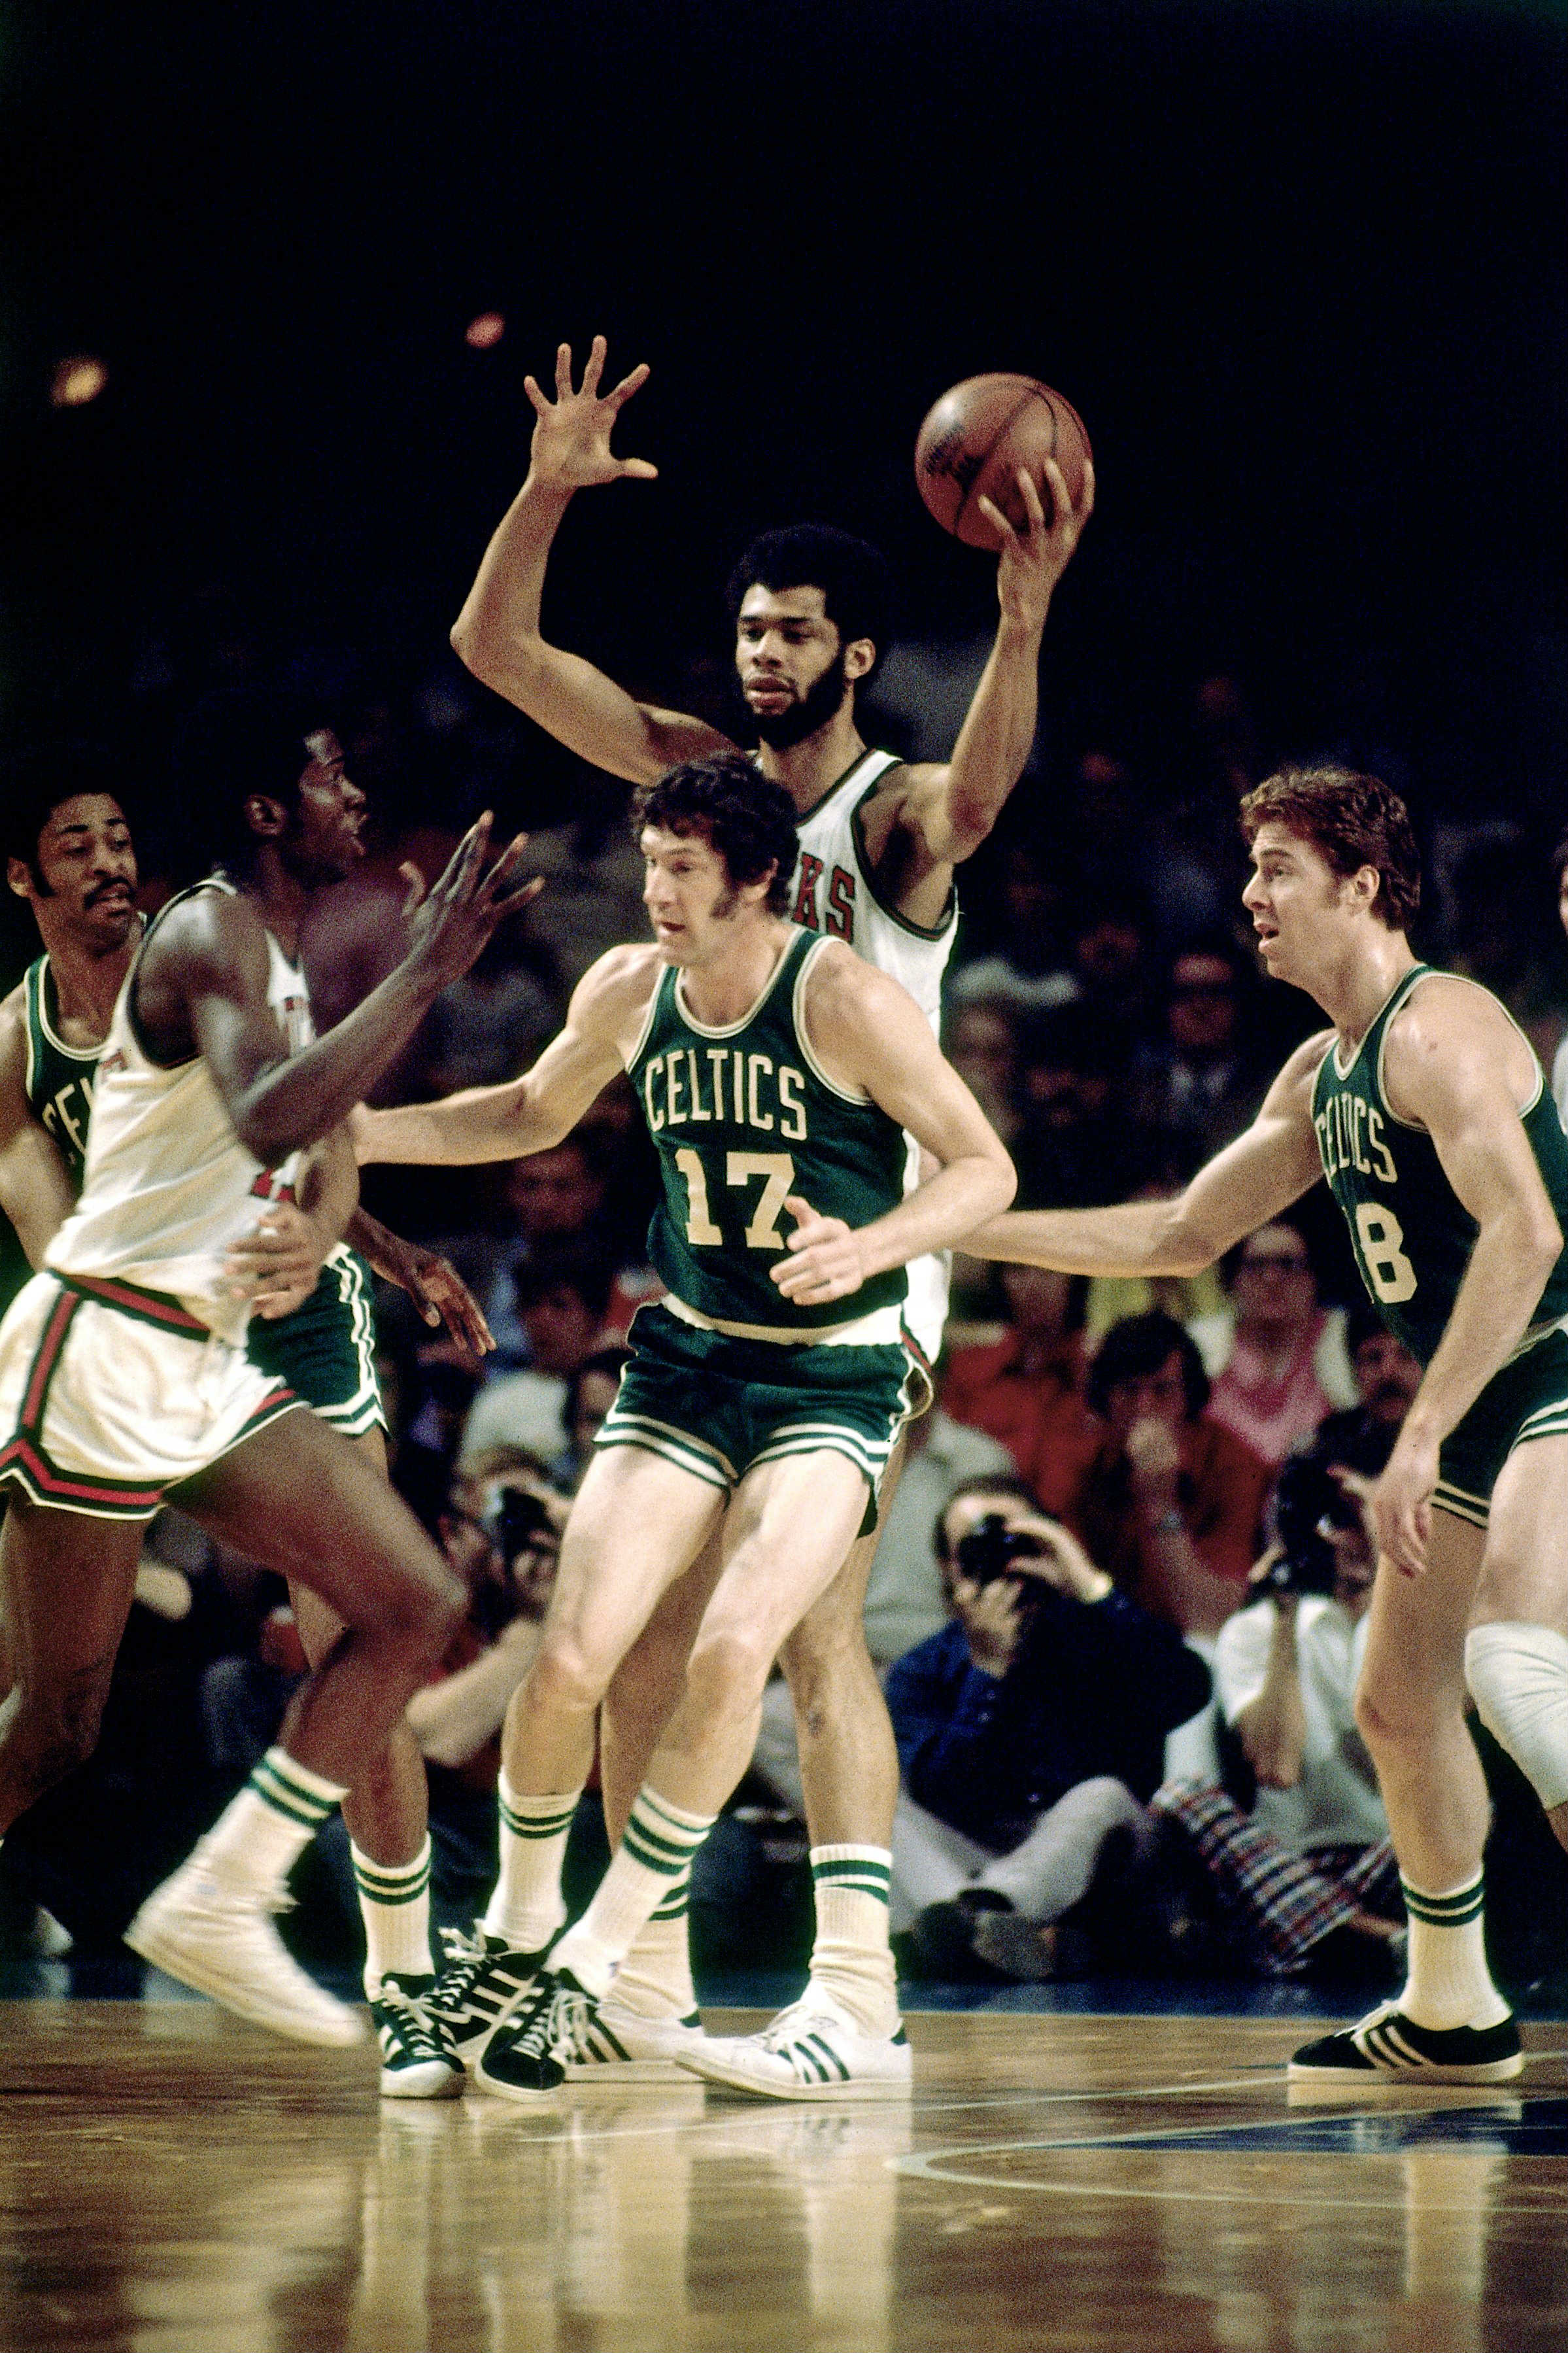 Kareem Abdul-Jabbar playing for the Milwaukee Bucks